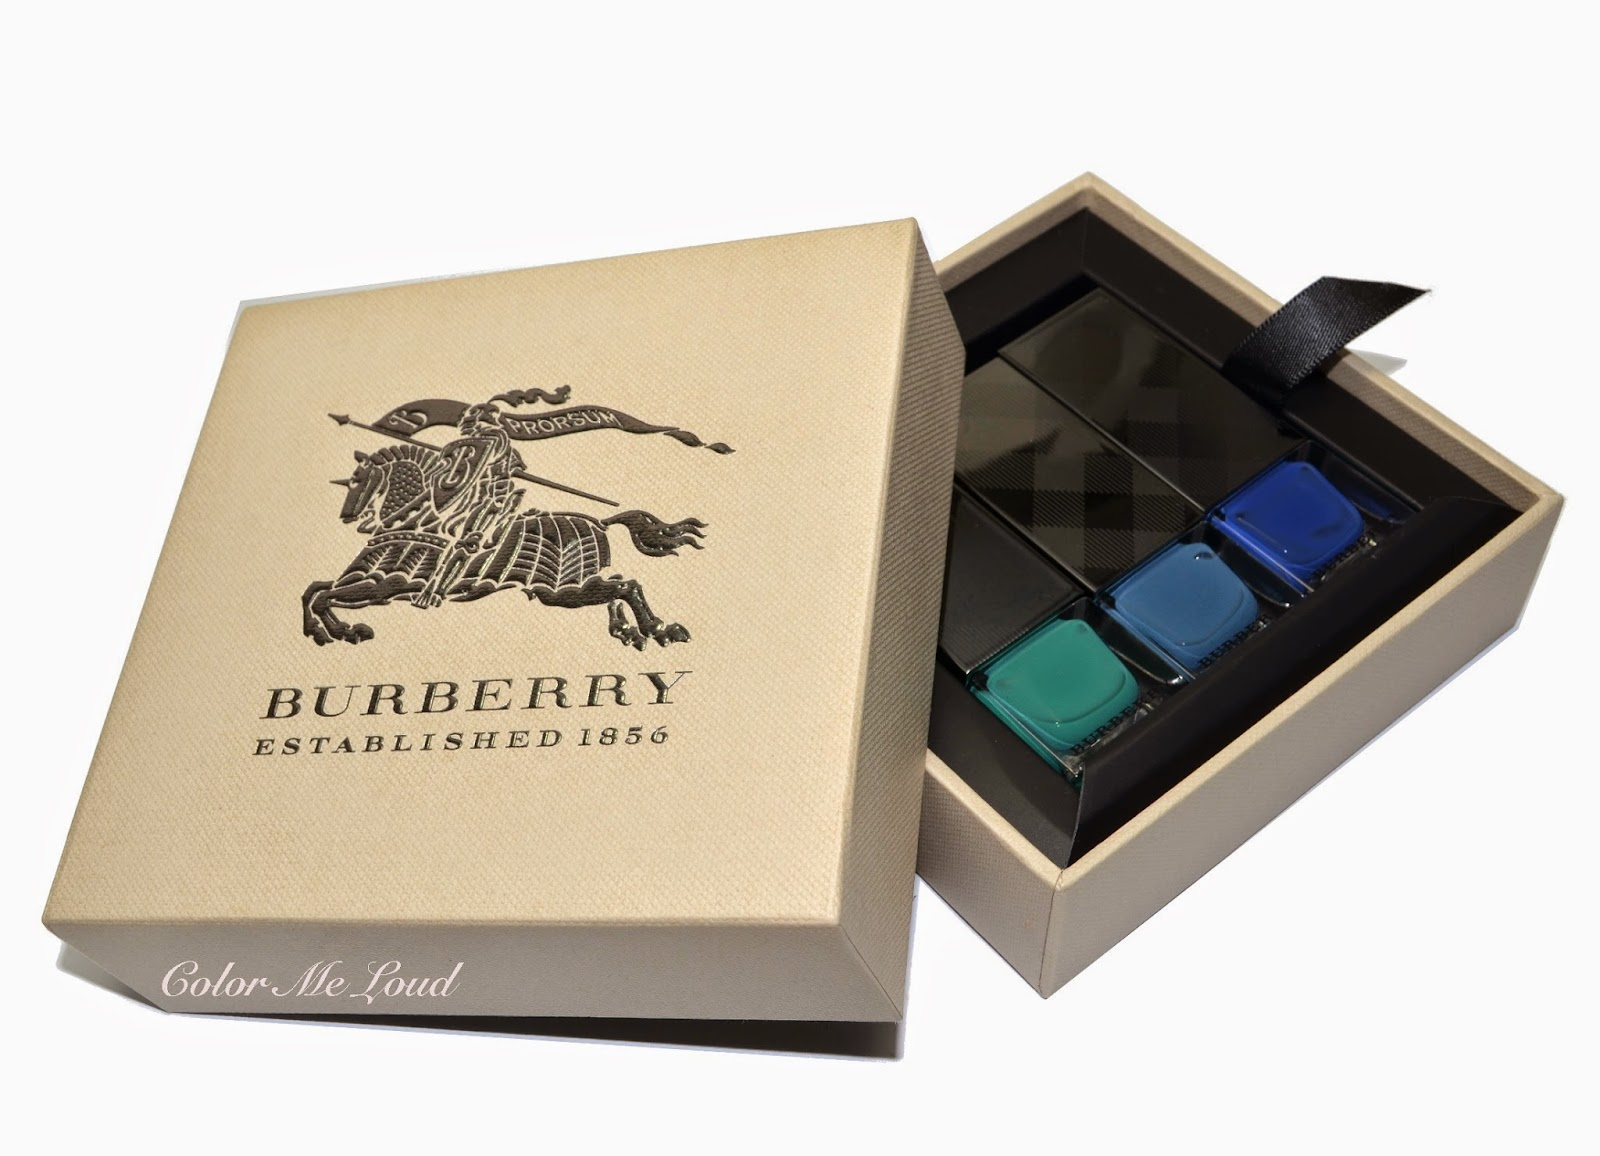 Burberry Nail Polish #418 Aqua Green, #431 Stone Blue and #429 Imperial Blue